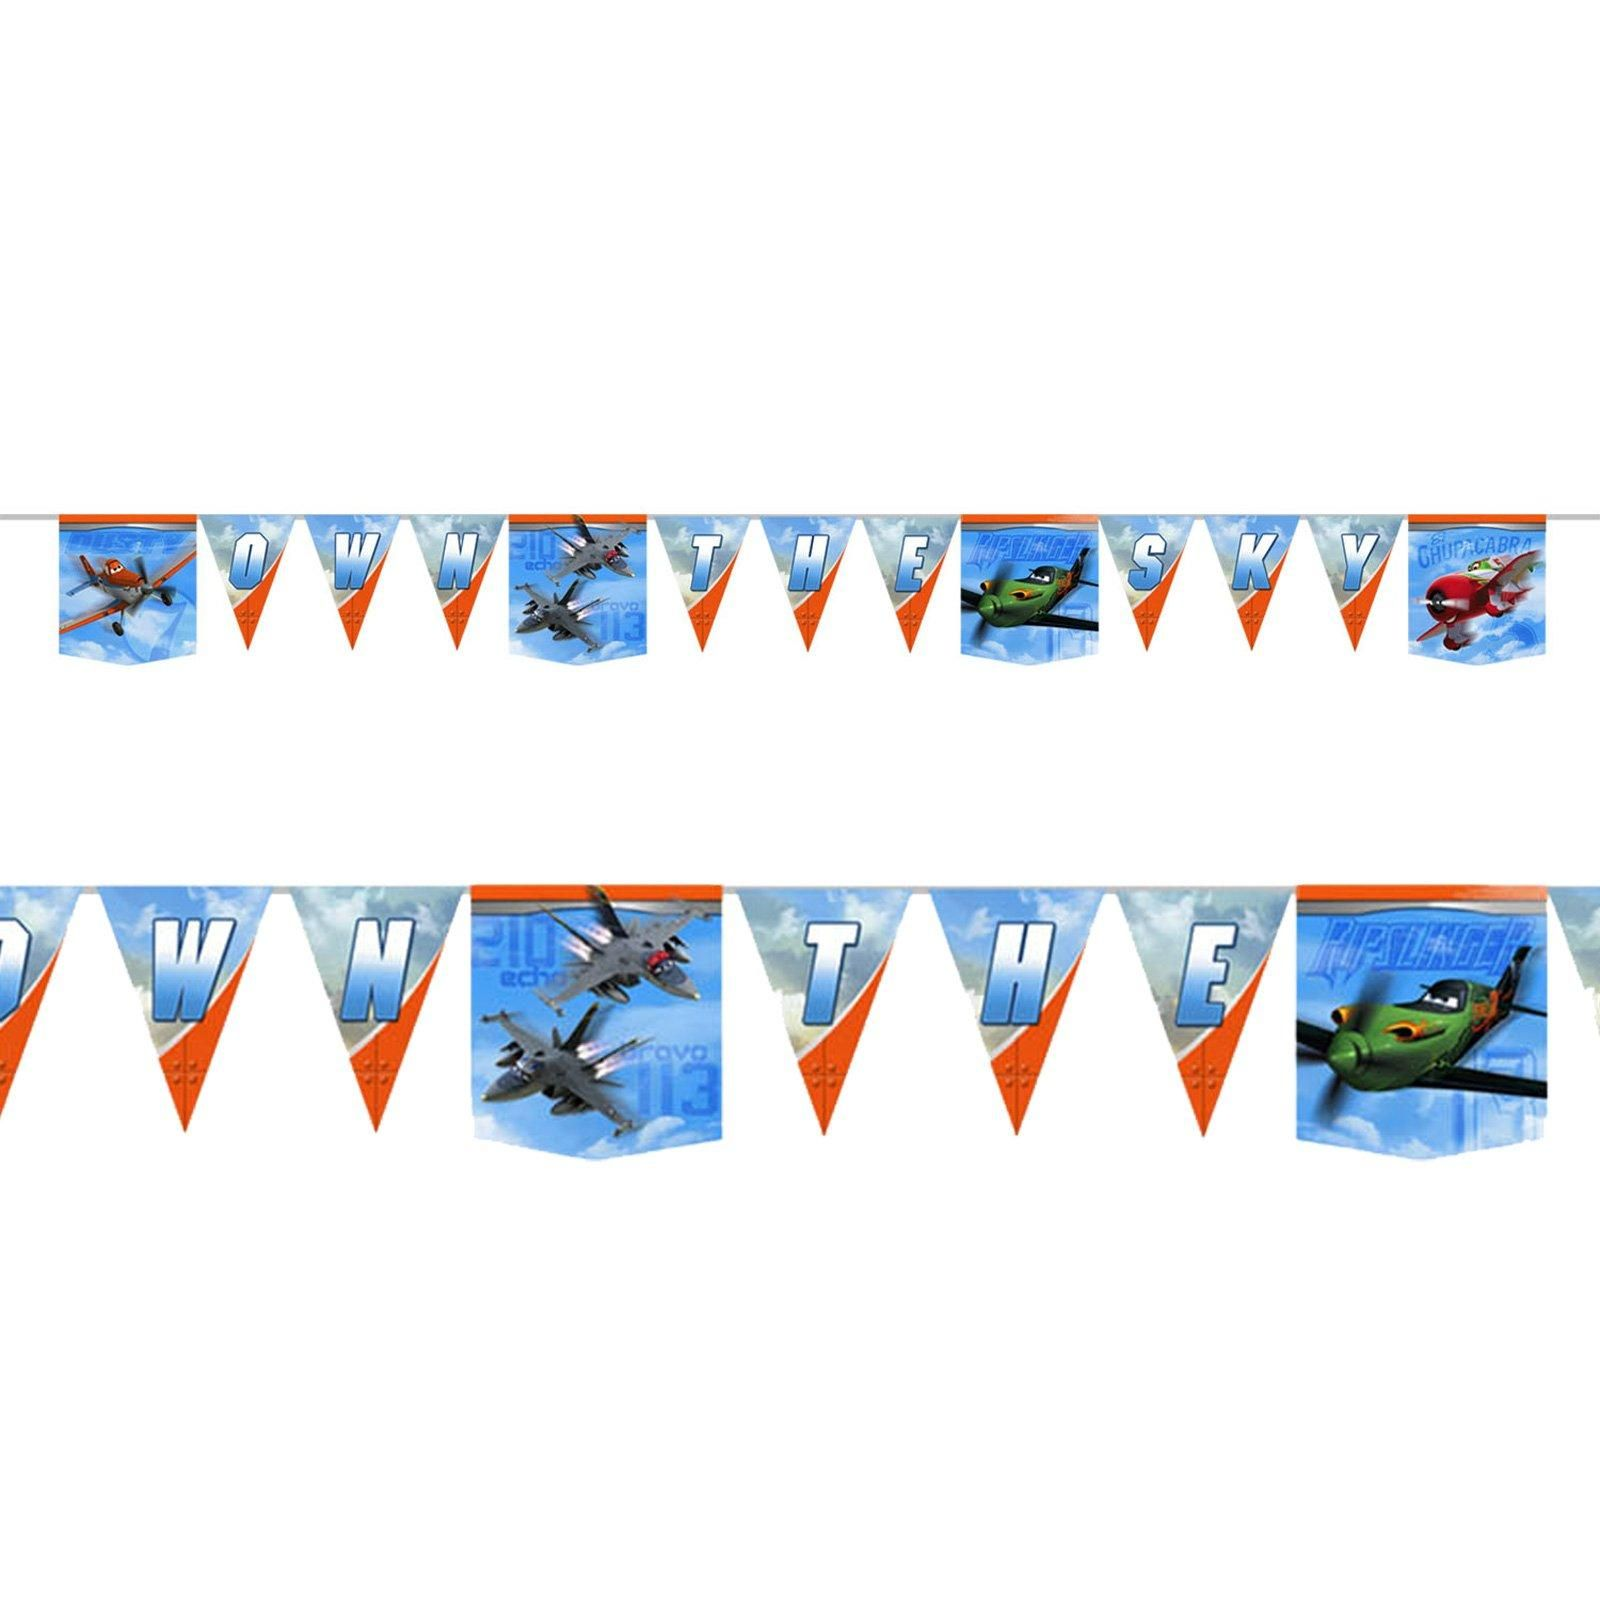 birthday express banners ; c9a1fdcc67c100eda6f8068a3f8615c4